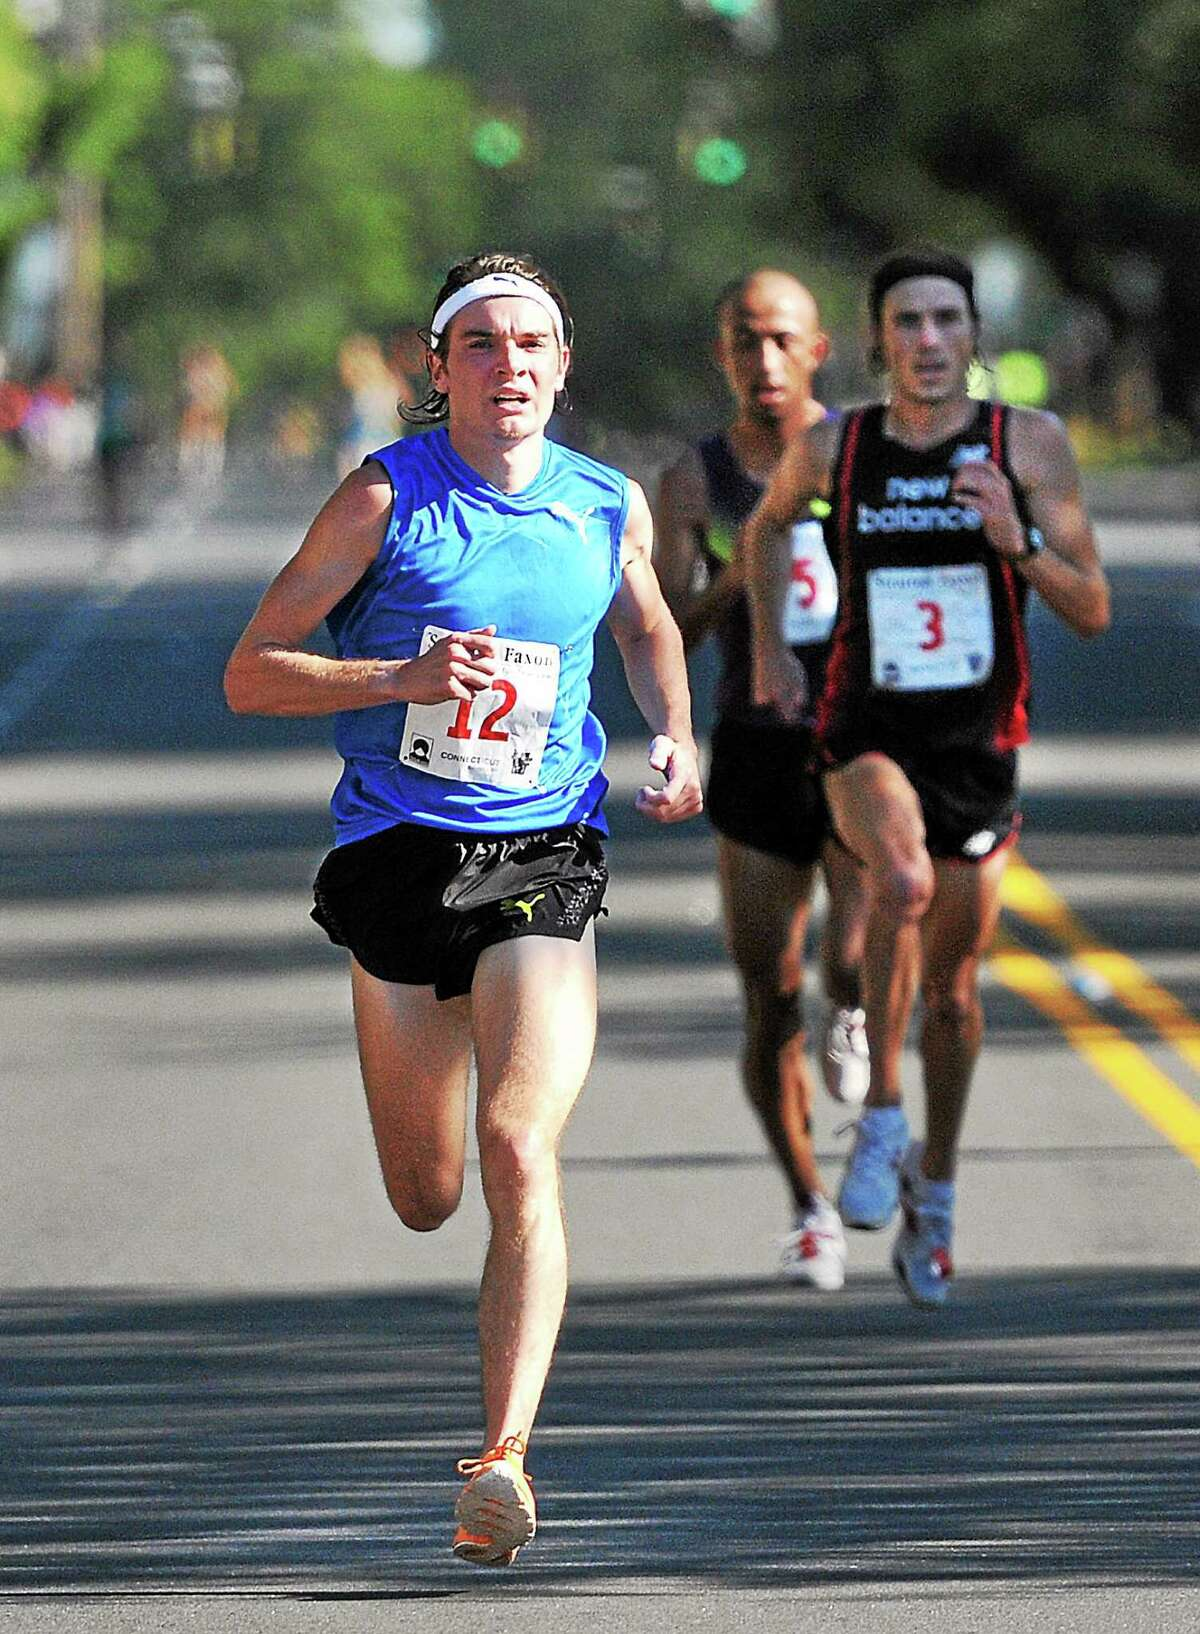 Sean Quigley starts to increase his lead over James Carney and Mohamed Trafeh along Whitney Avenue on his way to winning the 2010 New Haven Road Race.